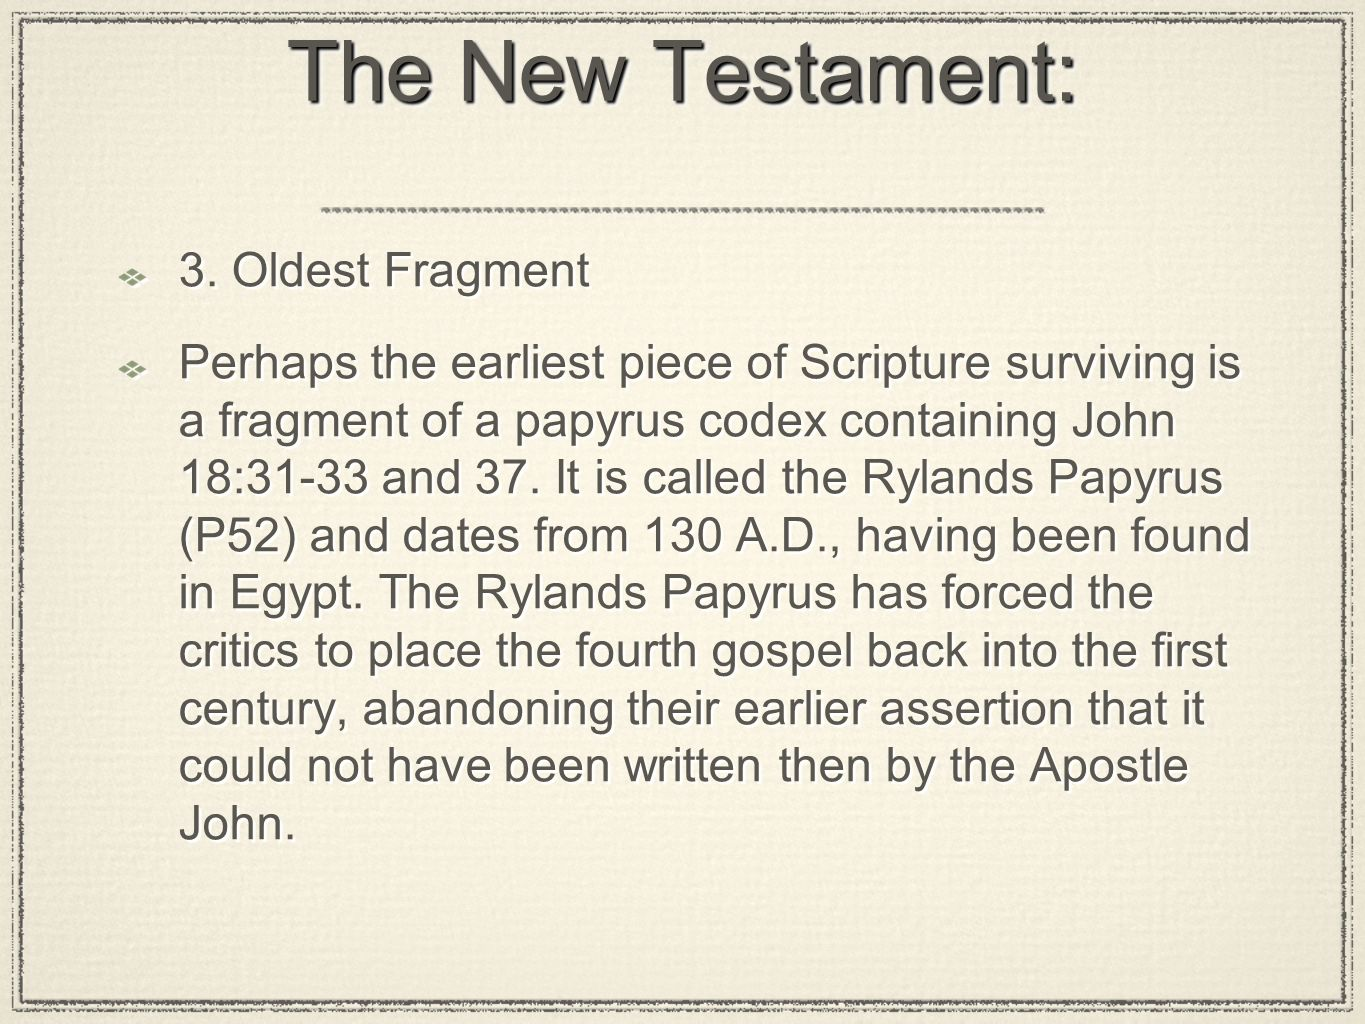 The New Testament: 3. Oldest Fragment Perhaps the earliest piece of Scripture surviving is a fragment of a papyrus codex containing John 18:31-33 and